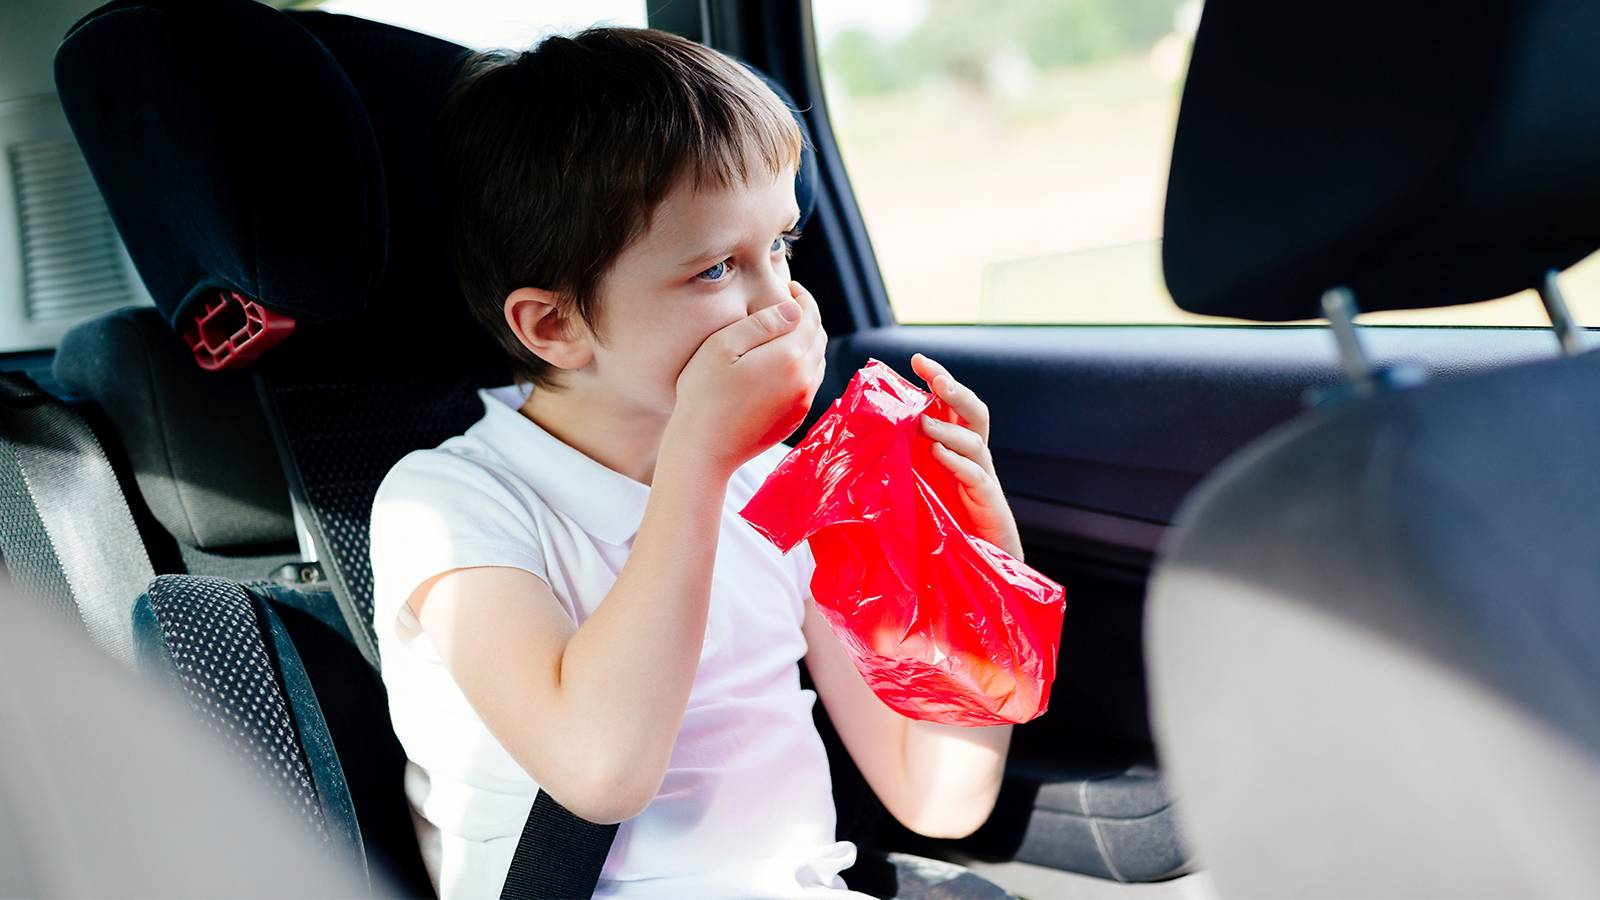 Parents-8-ways-to-protect-your-car-from-your-kids-2